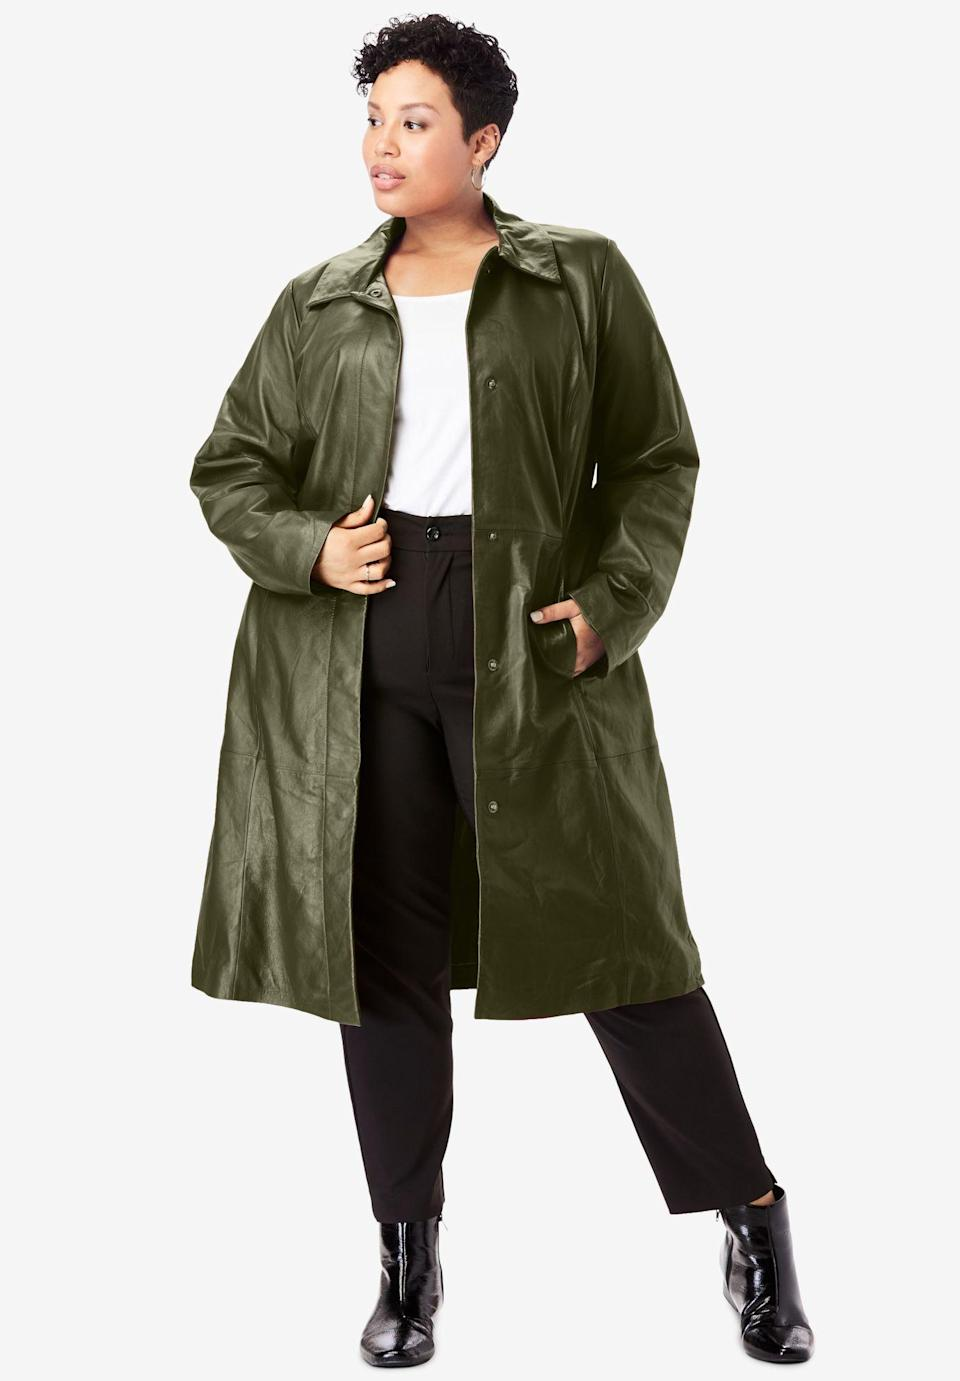 """<p><strong>Jessica London</strong></p><p>fullbeauty.com</p><p><strong>$319.99</strong></p><p><a href=""""https://go.redirectingat.com?id=74968X1596630&url=https%3A%2F%2Fwww.fullbeauty.com%2Fproducts%2Ftrench-coat%2F1033099.html%23cartCookie%3Dfalse%26sz%3D60%26start%3D1%26isRedirect%3Dtrue%26cgid%3DFBB_Womens_Coats_And_Jackets&sref=https%3A%2F%2Fwww.oprahmag.com%2Fstyle%2Fg33266496%2Fplus-size-coats%2F"""" rel=""""nofollow noopener"""" target=""""_blank"""" data-ylk=""""slk:SHOP NOW"""" class=""""link rapid-noclick-resp"""">SHOP NOW</a></p><p>One of the biggest trends this season? Leather—and this olive green trench is the perfect way to incorporate it into your wardrobe. To avoid <em>Matrix </em>vibes, opt for a colored leather, rather than black.</p>"""